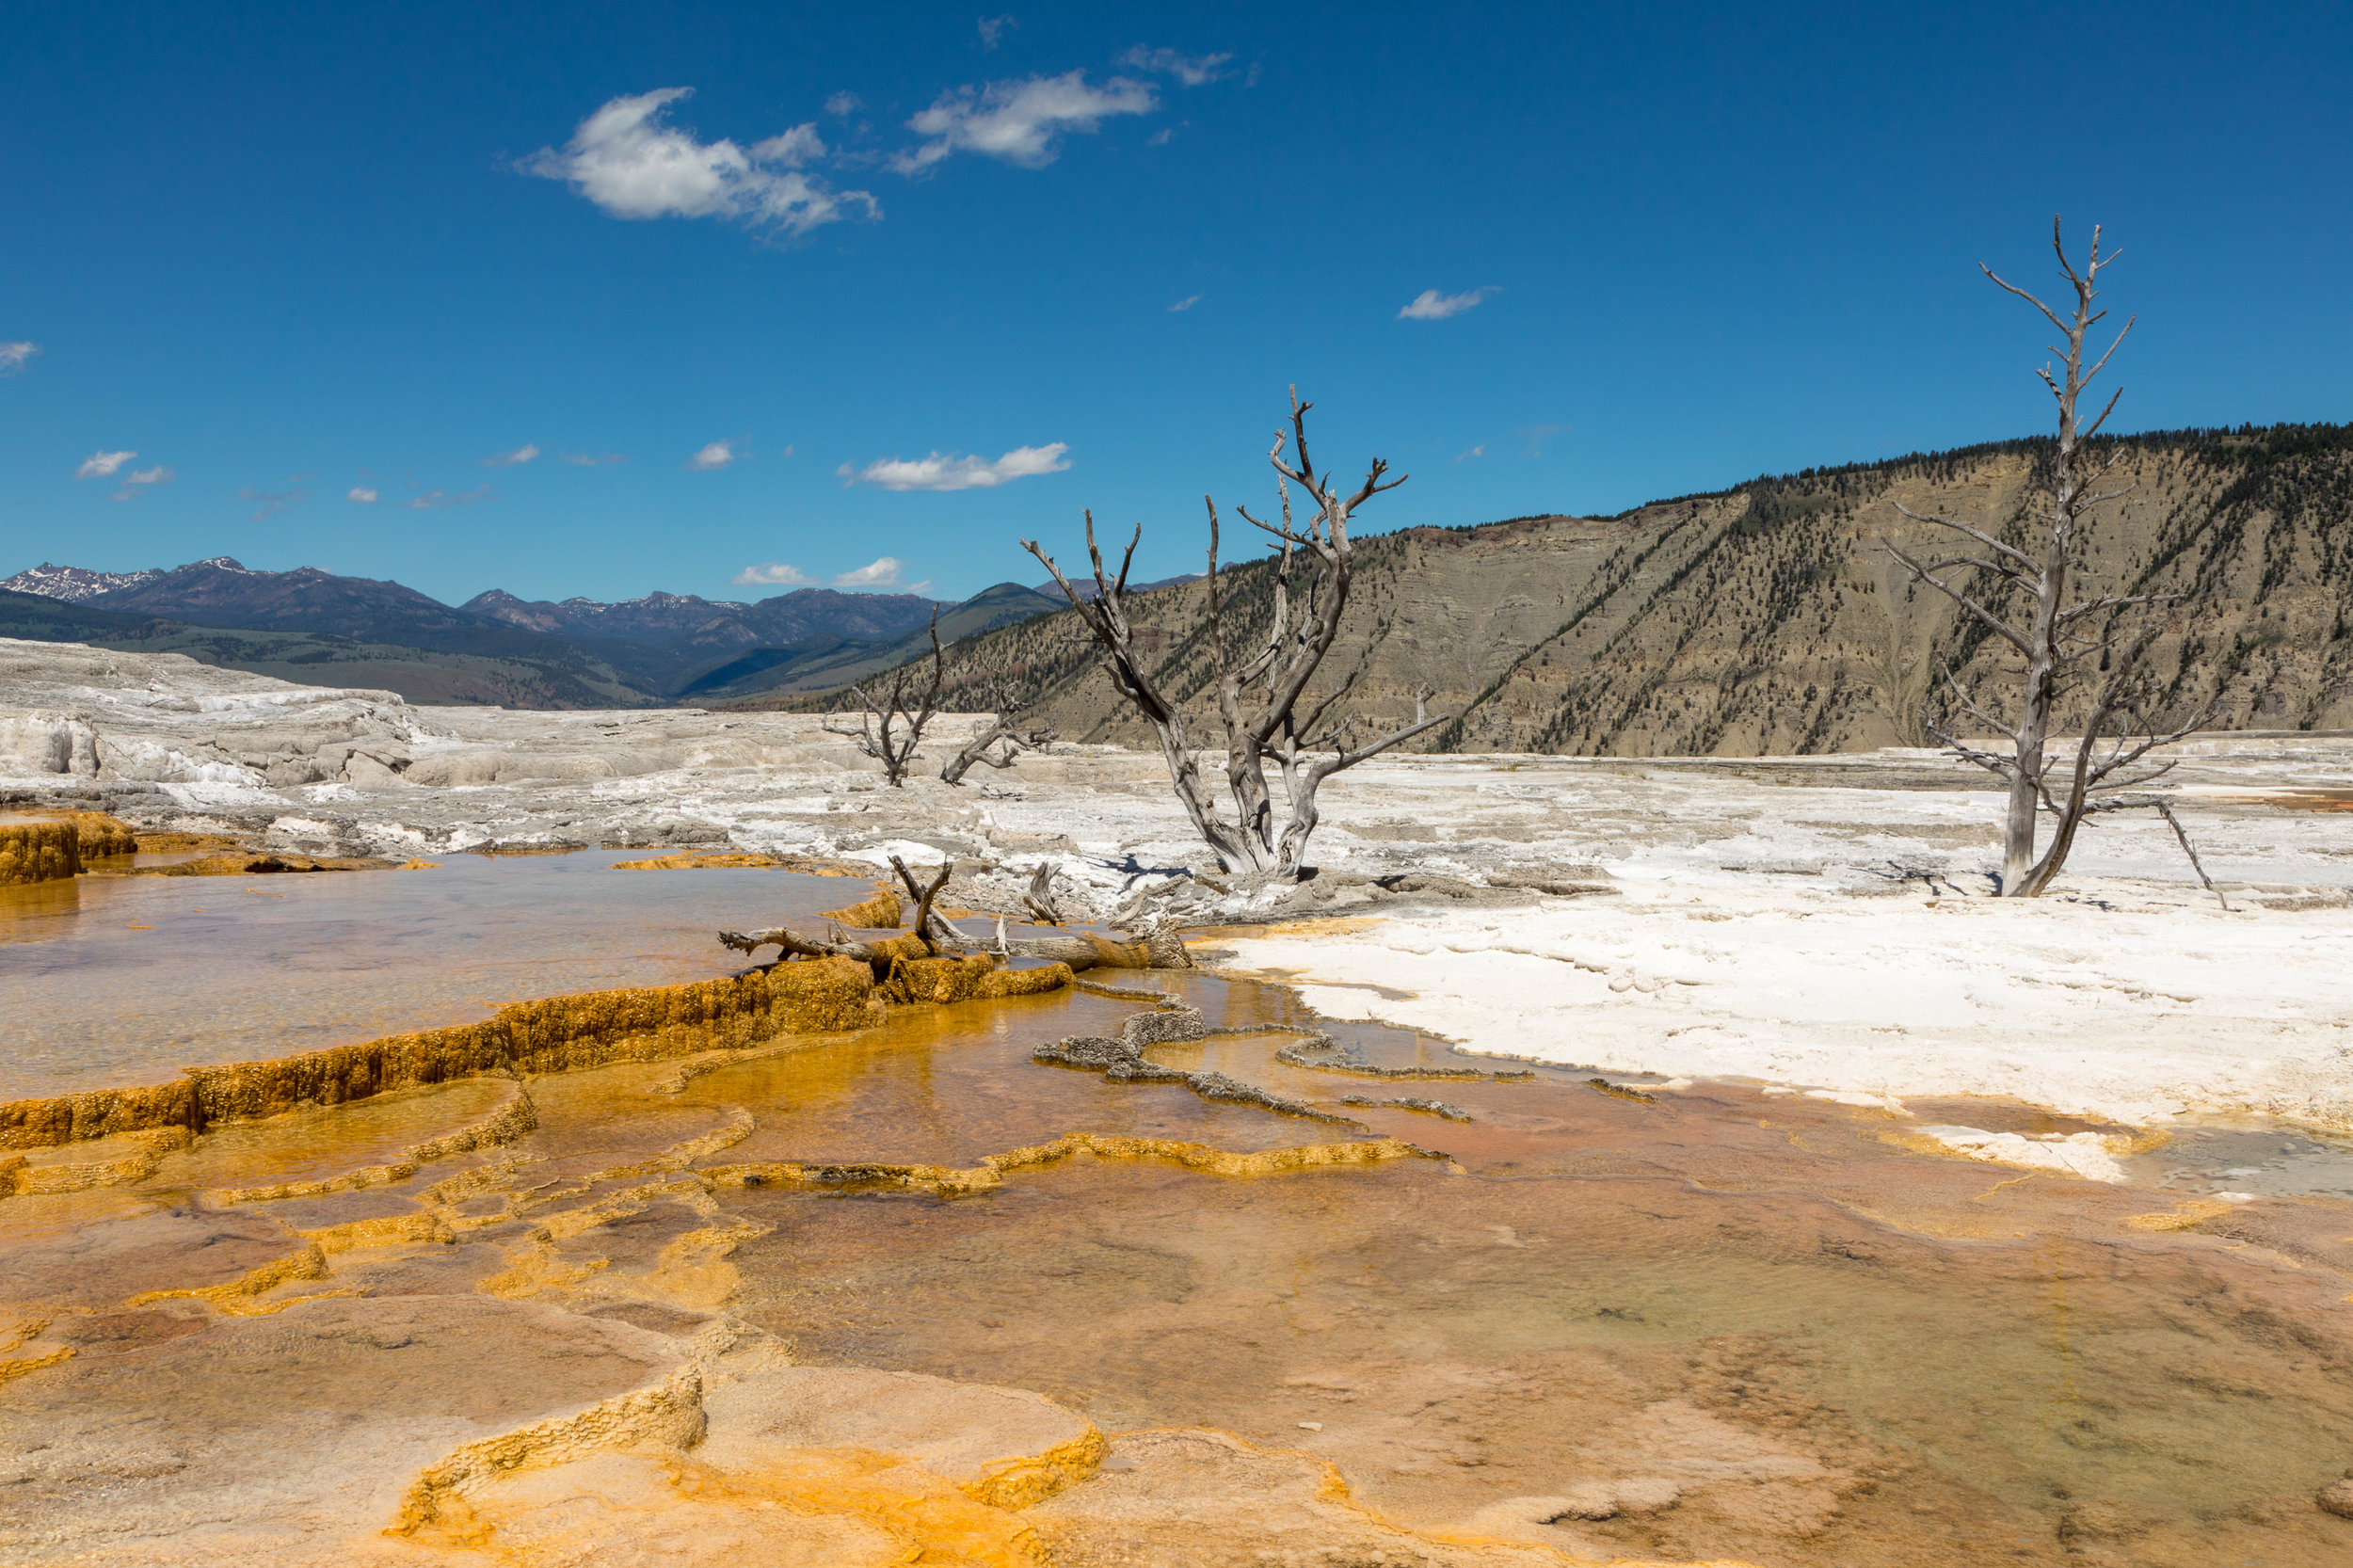 Mammoth Hot Springs, Yellowstone National Park, Image # 7332